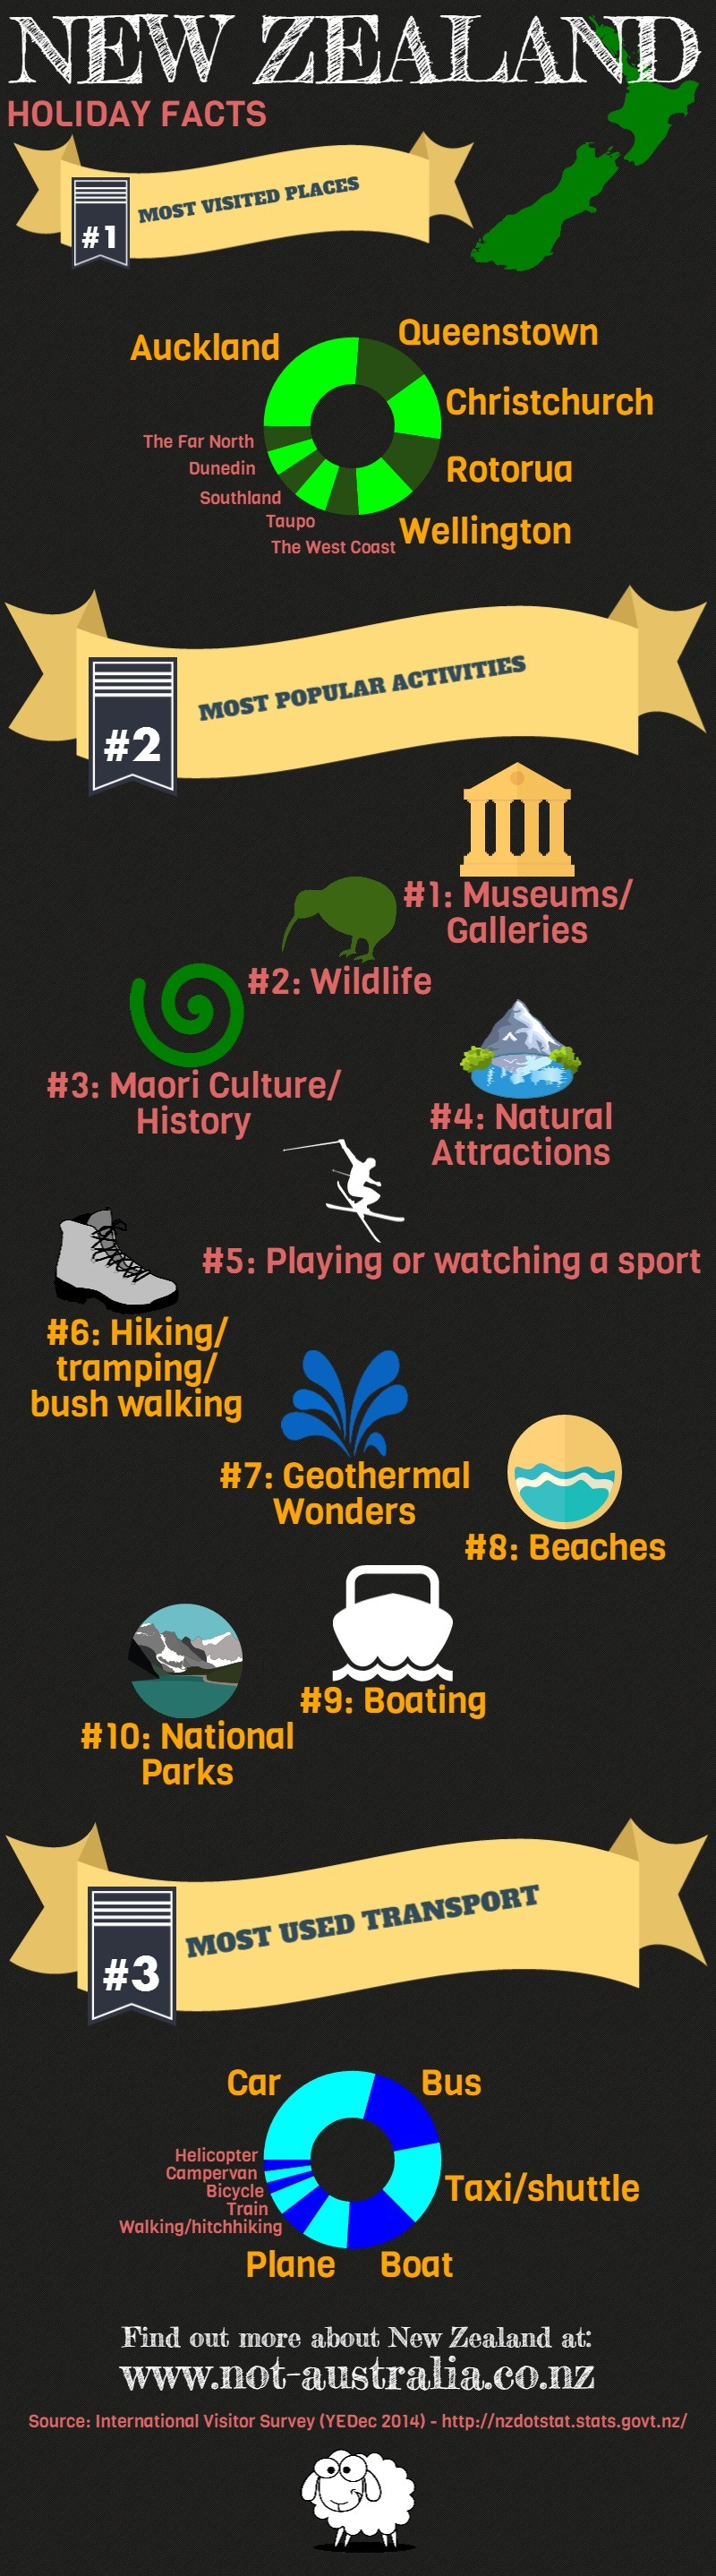 New Zealand Holiday Facts